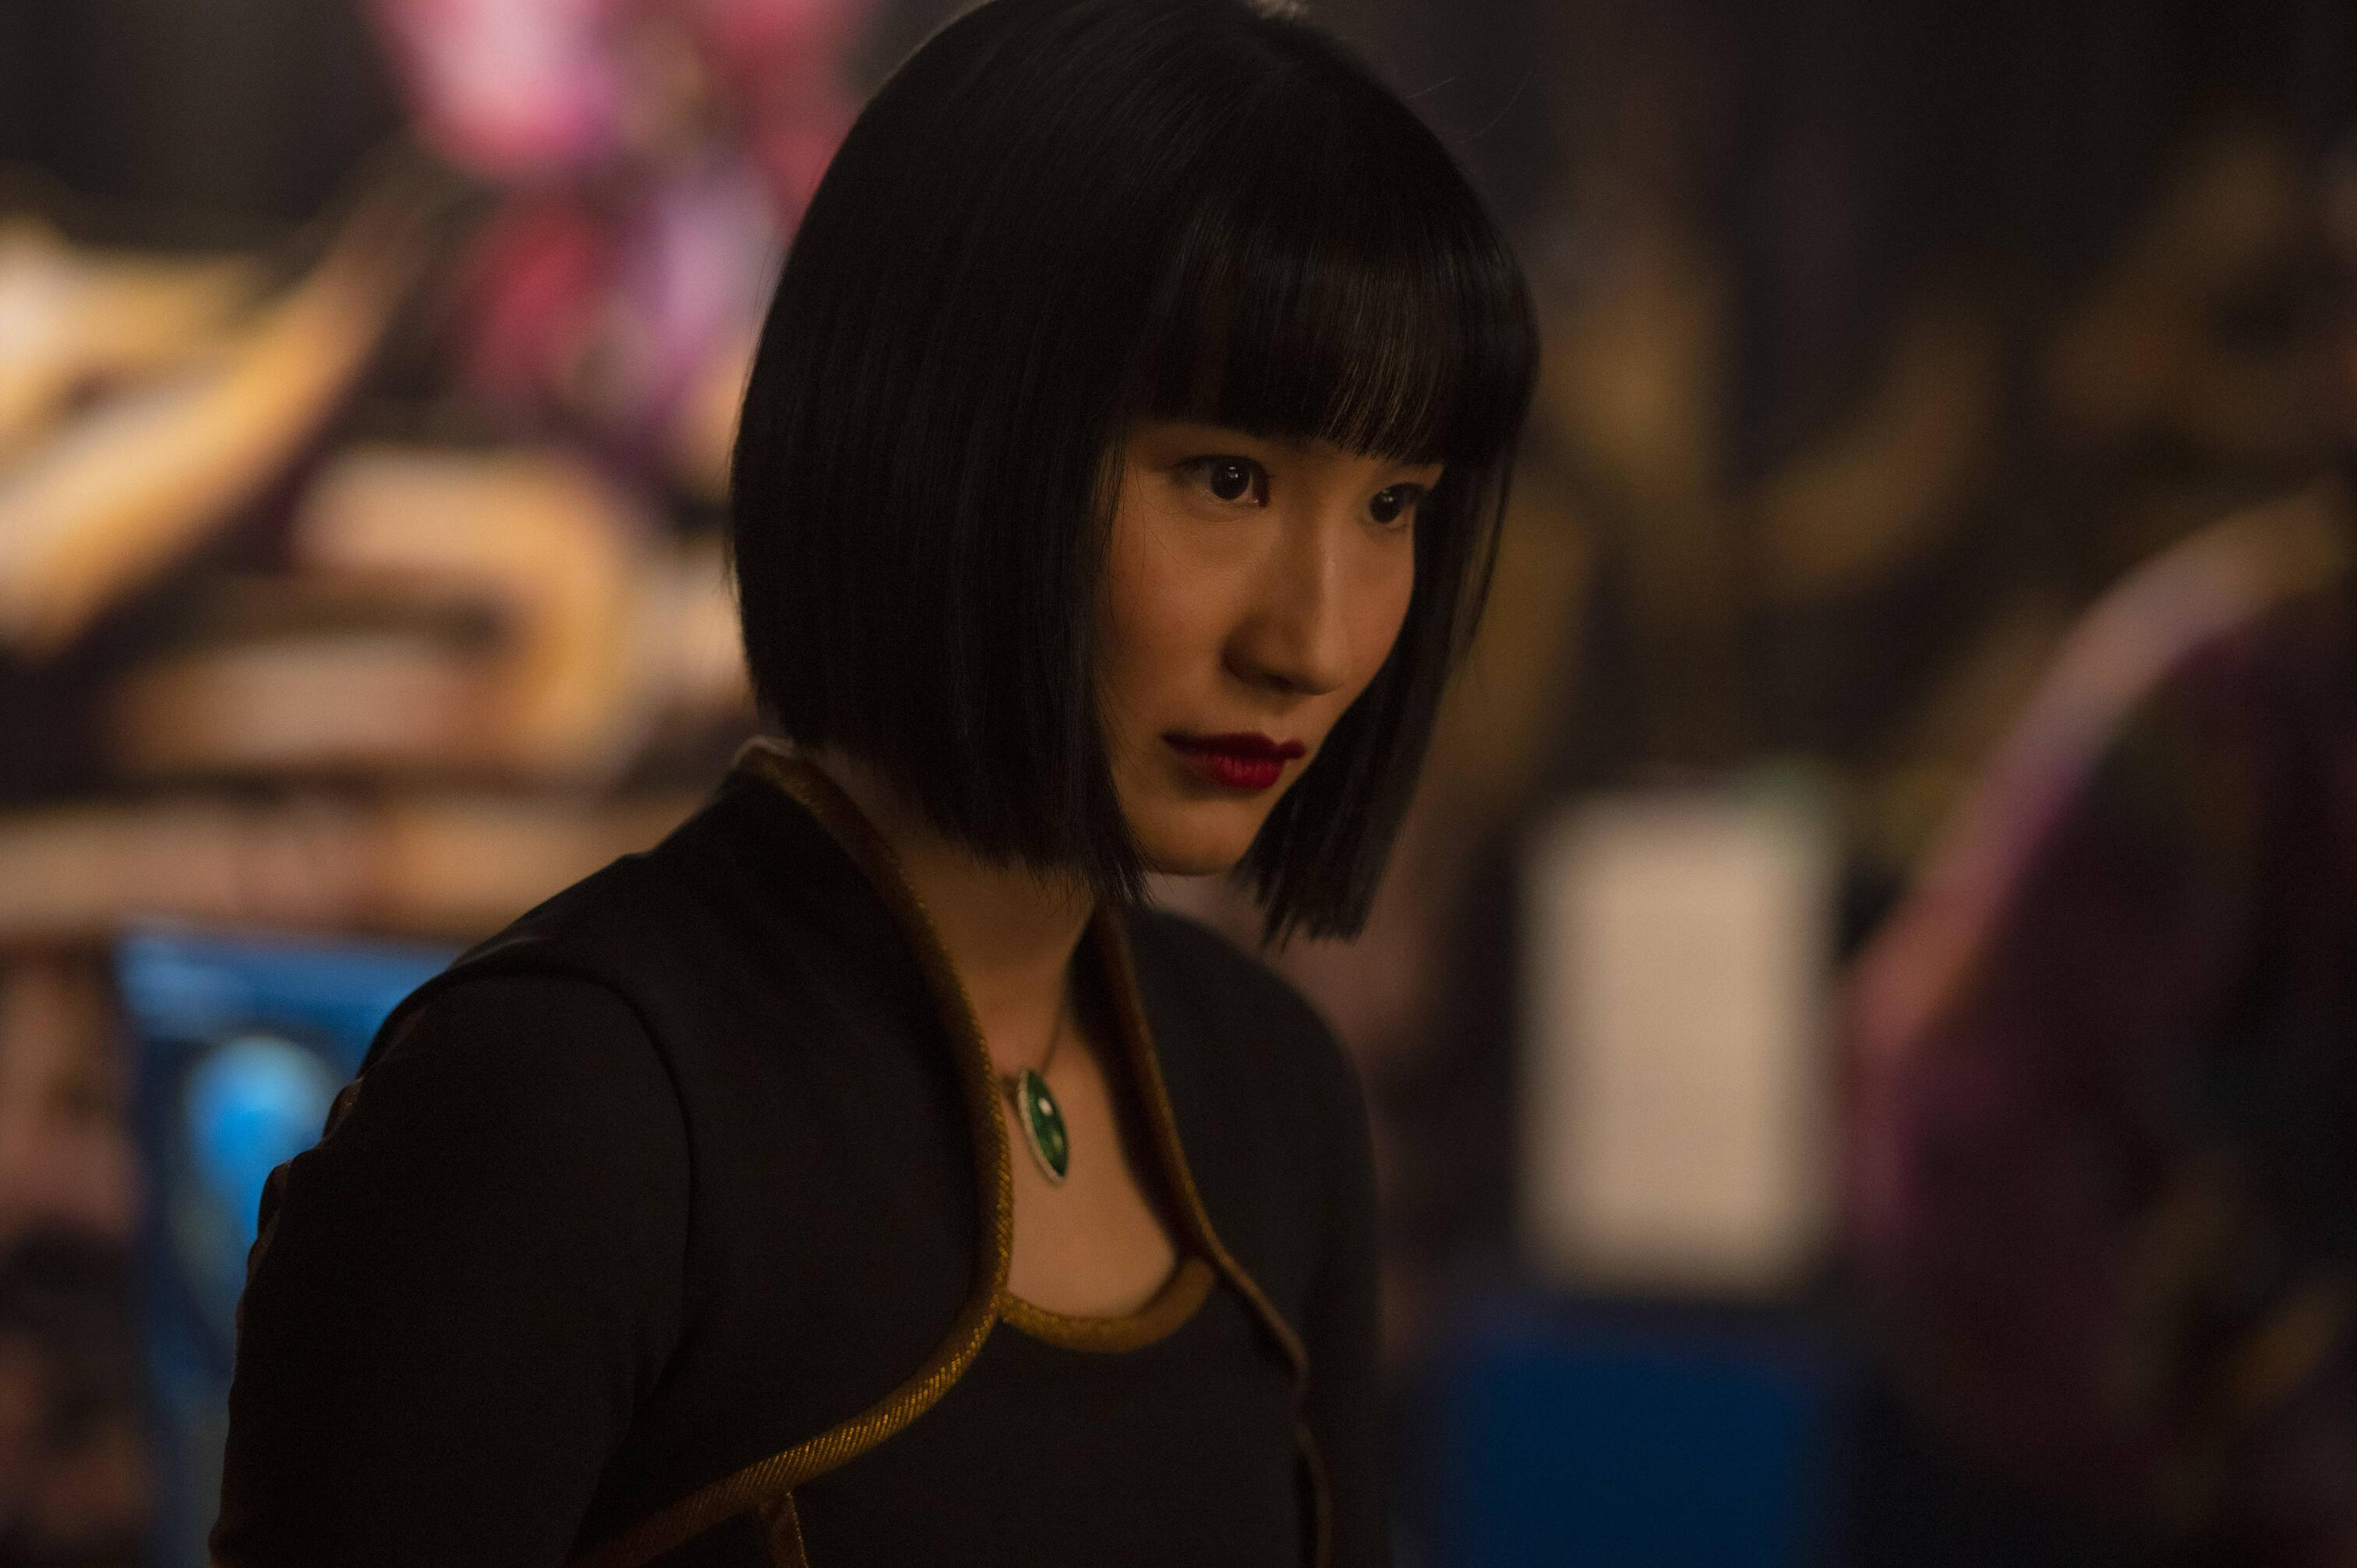 A still from 'Shang-Chi' of Xialing standing in the fight club